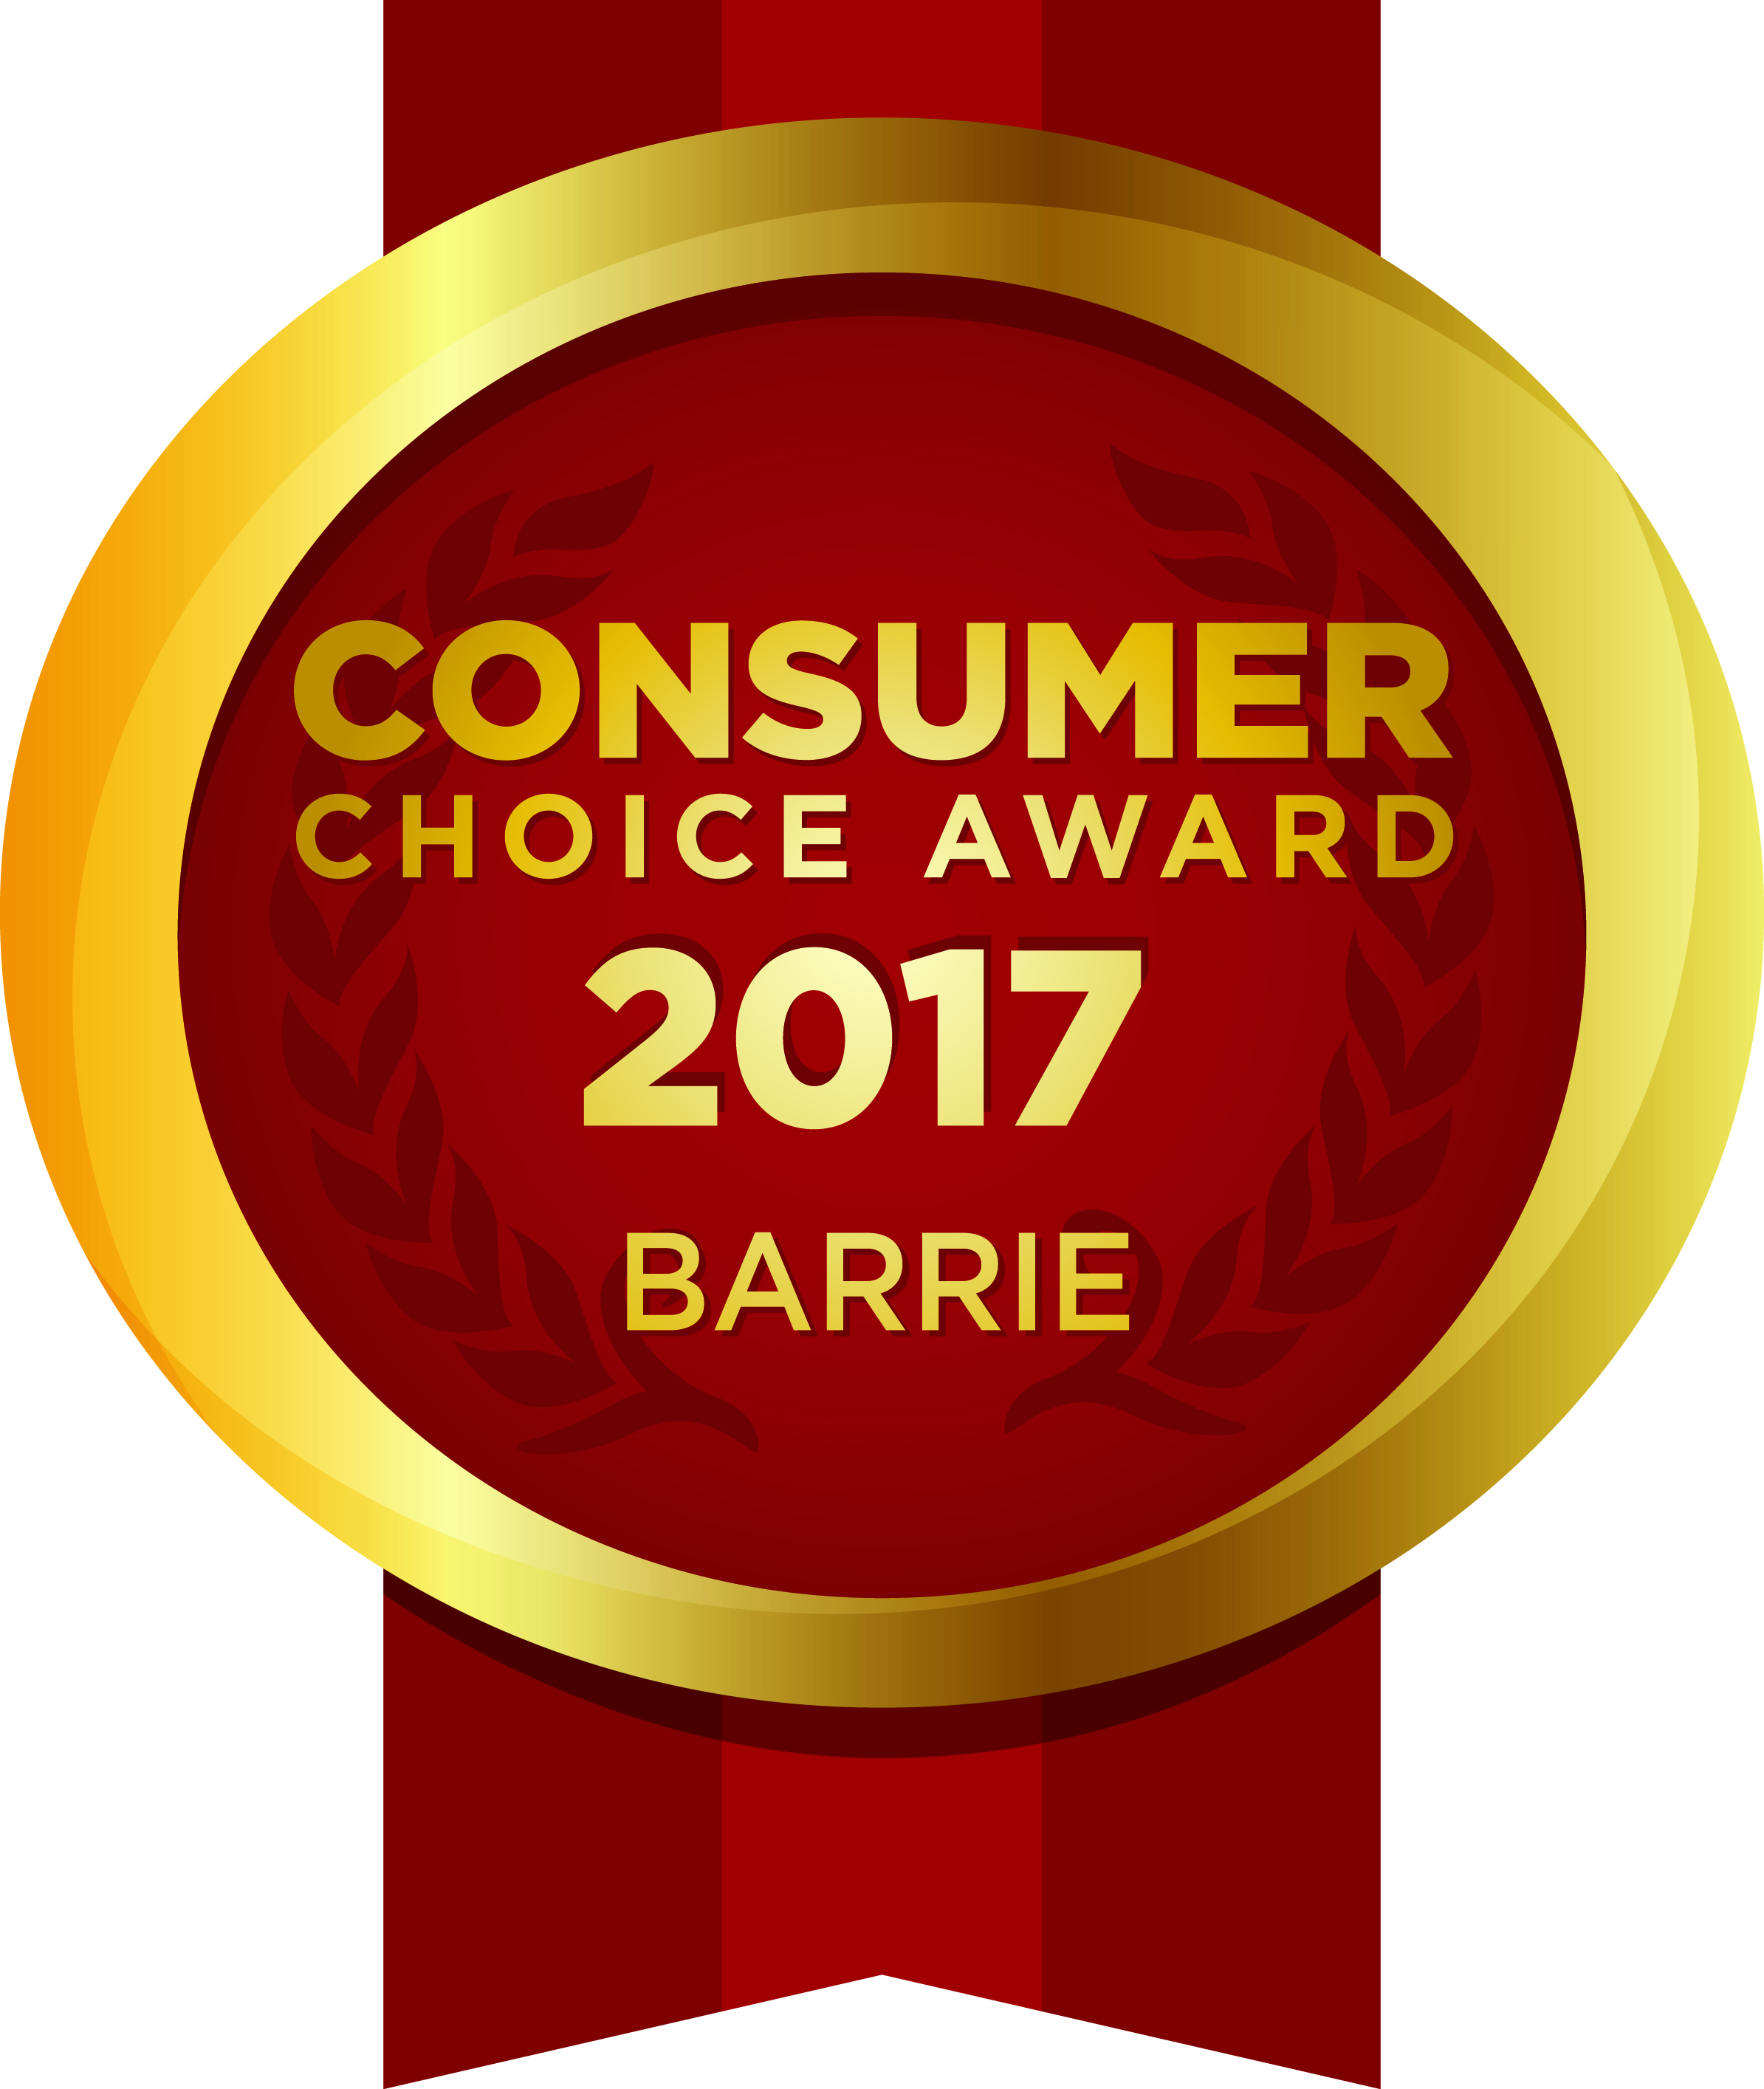 2017 Consumer Choice Award Winner Barrie